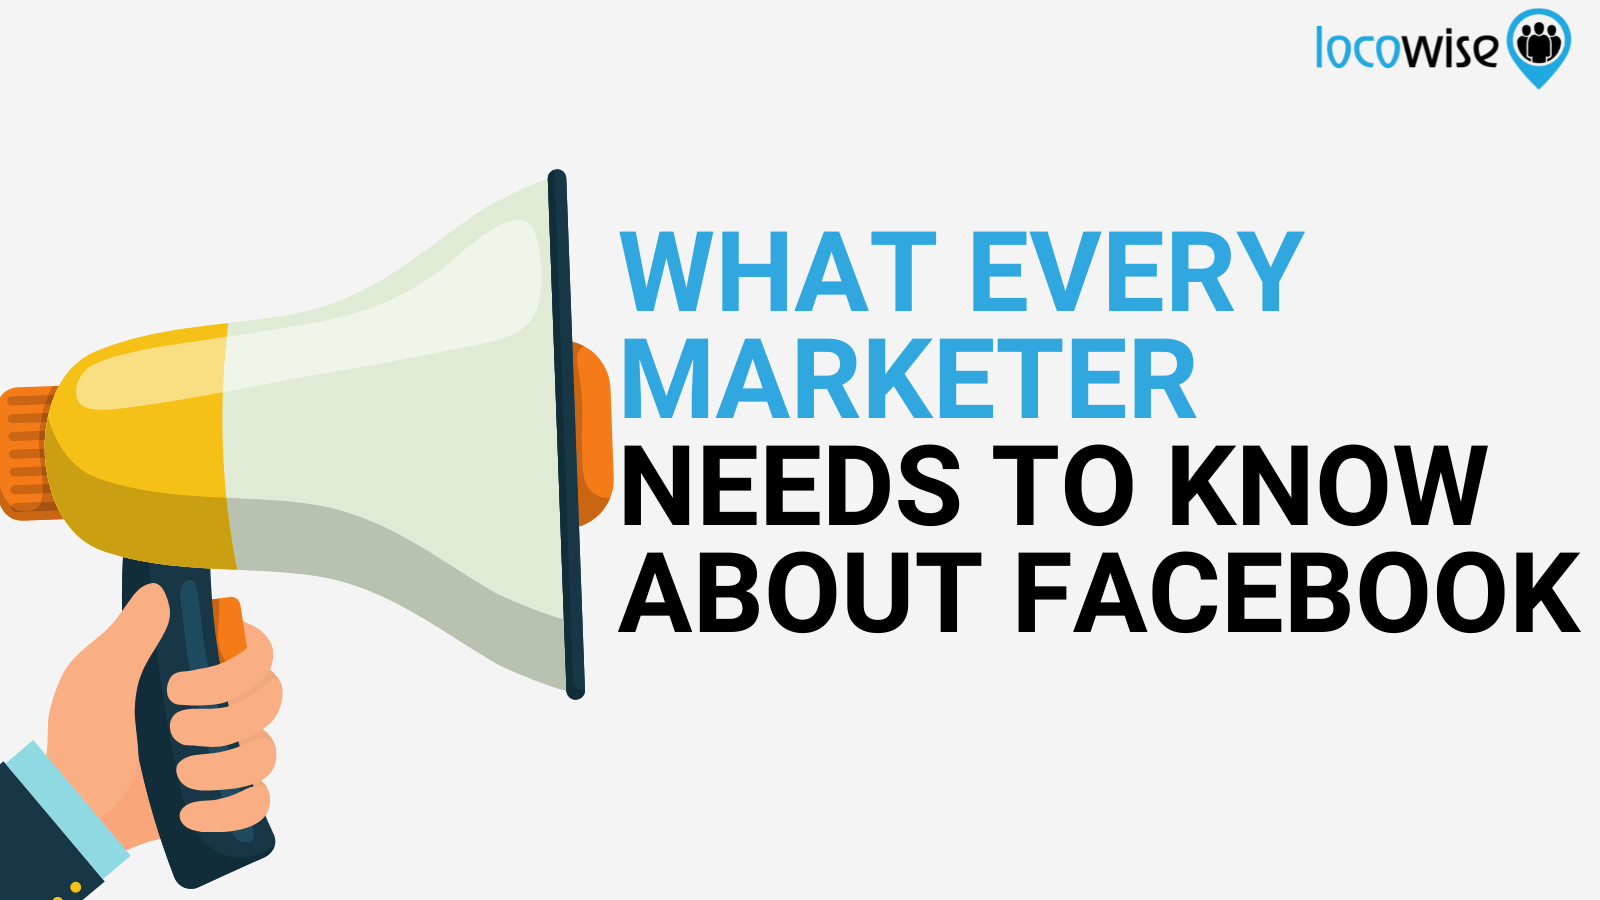 What Every Marketer Needs to Know About Facebook